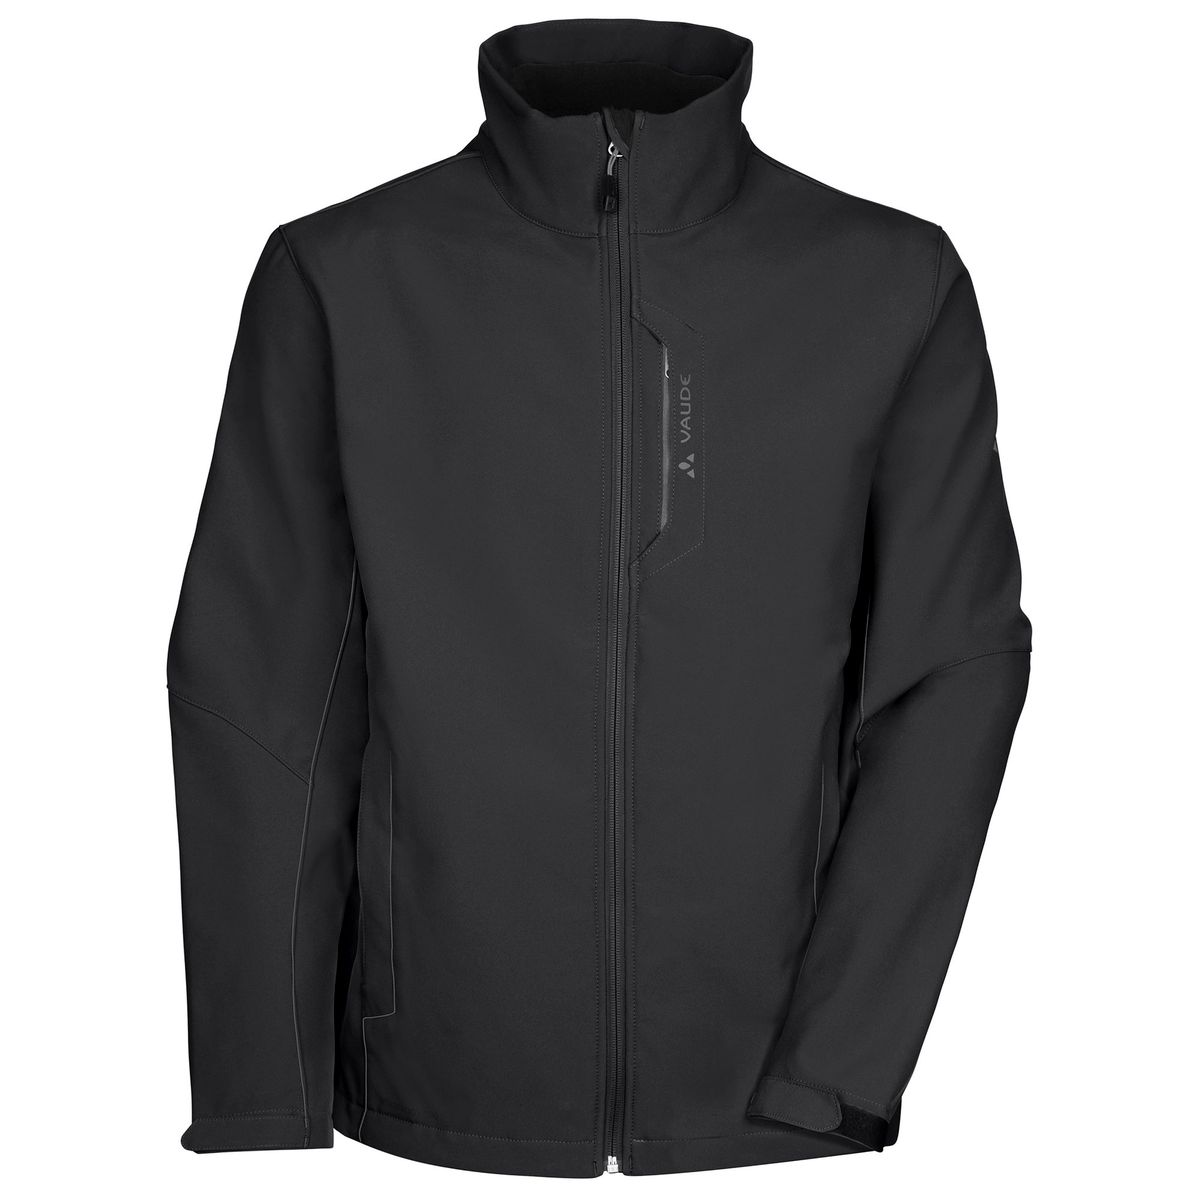 CYCLONE IV softshell jacket